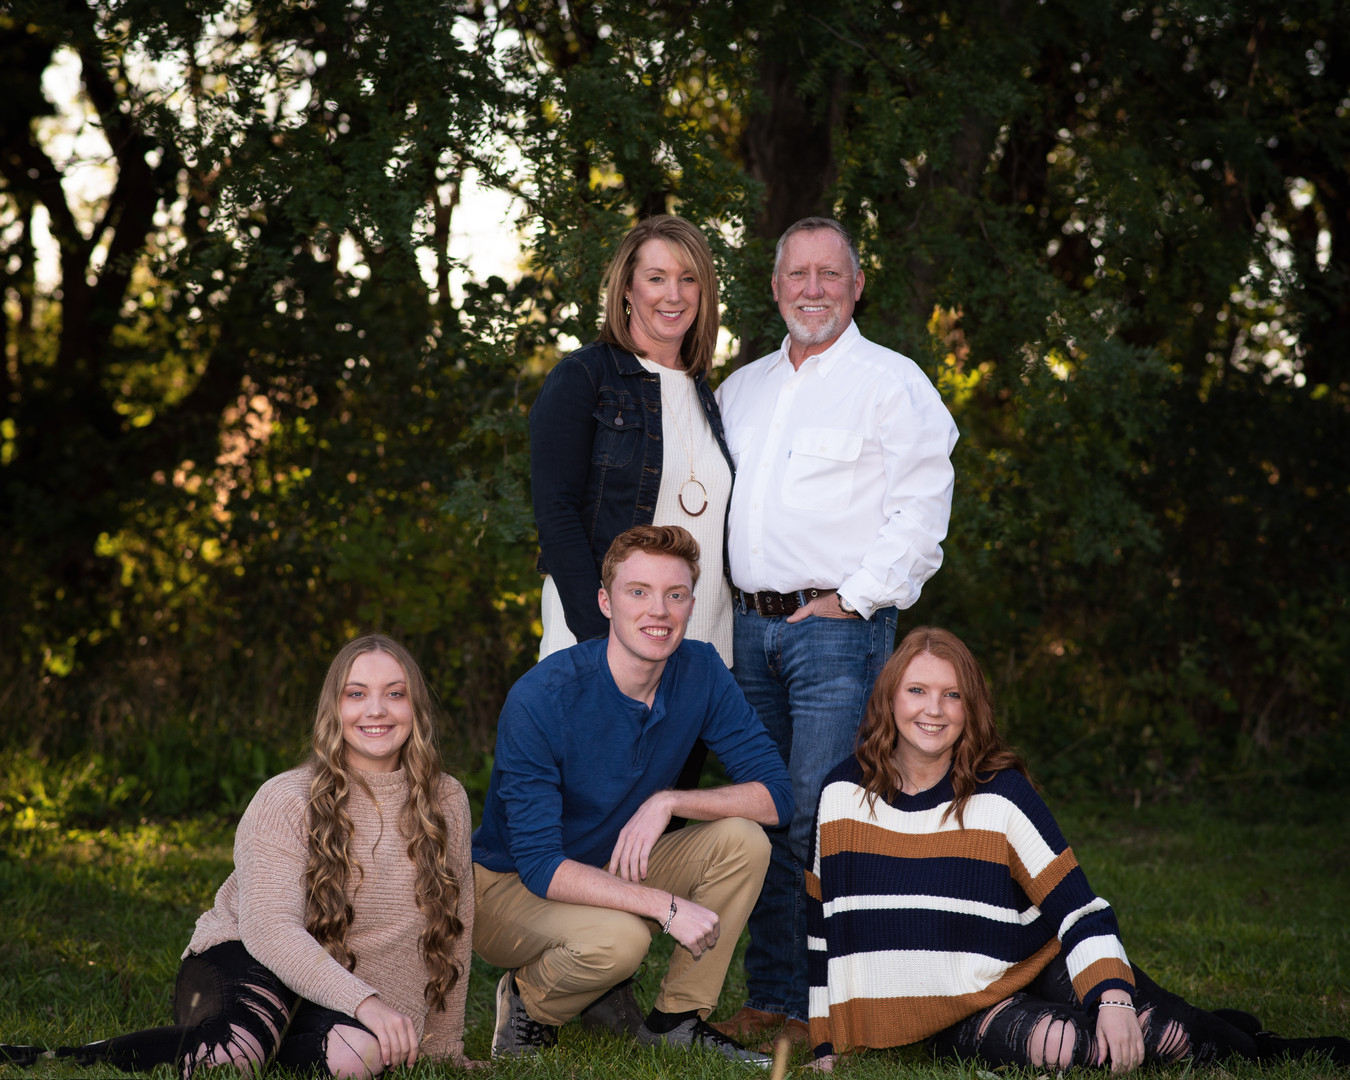 family-portrait-fall-nebraksa-emdukat-photography.jpg